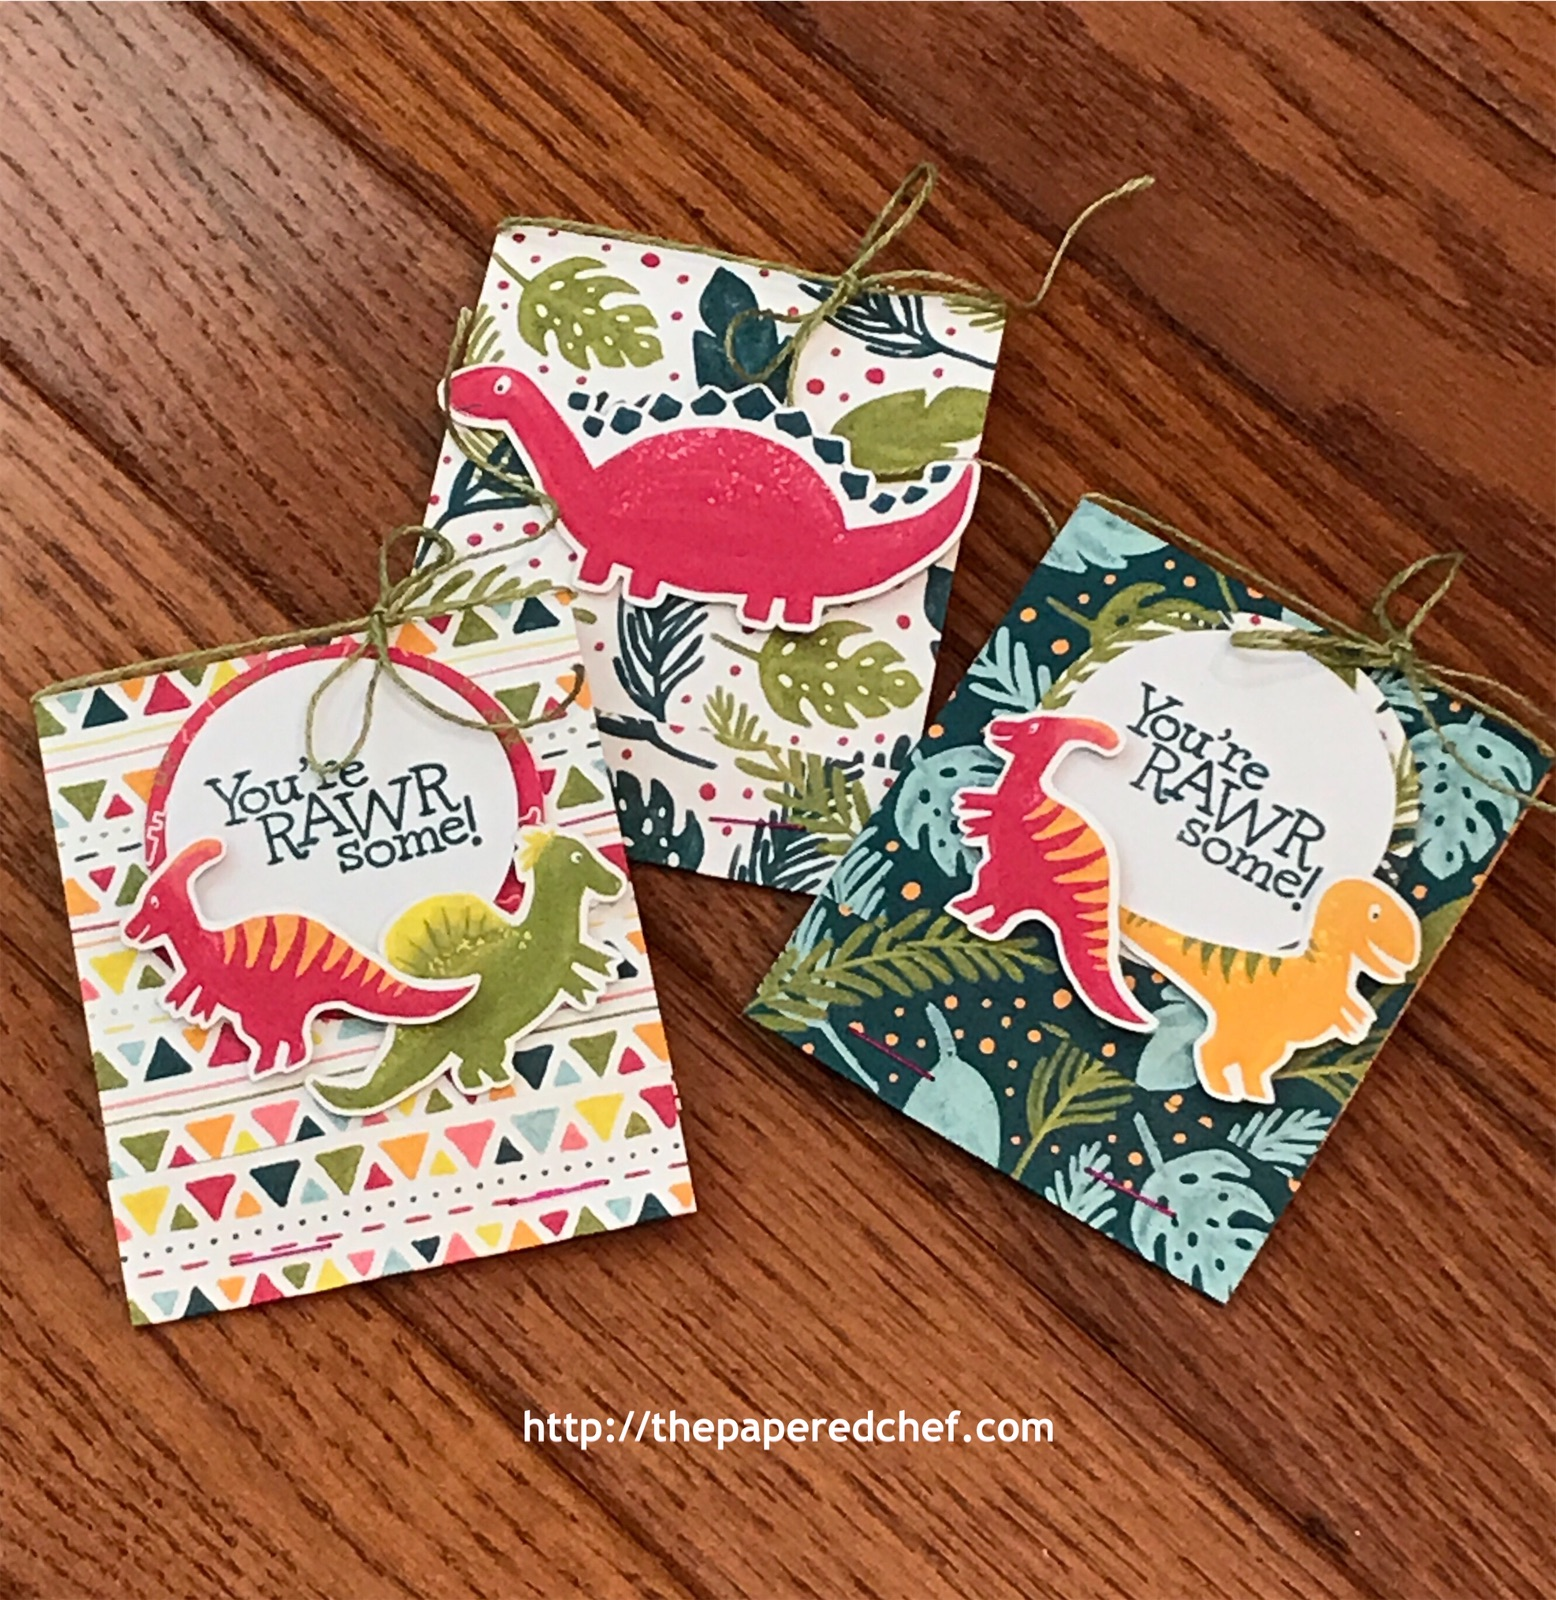 Dinoroar and Dino Days Tea Holders by Stampin' Up!